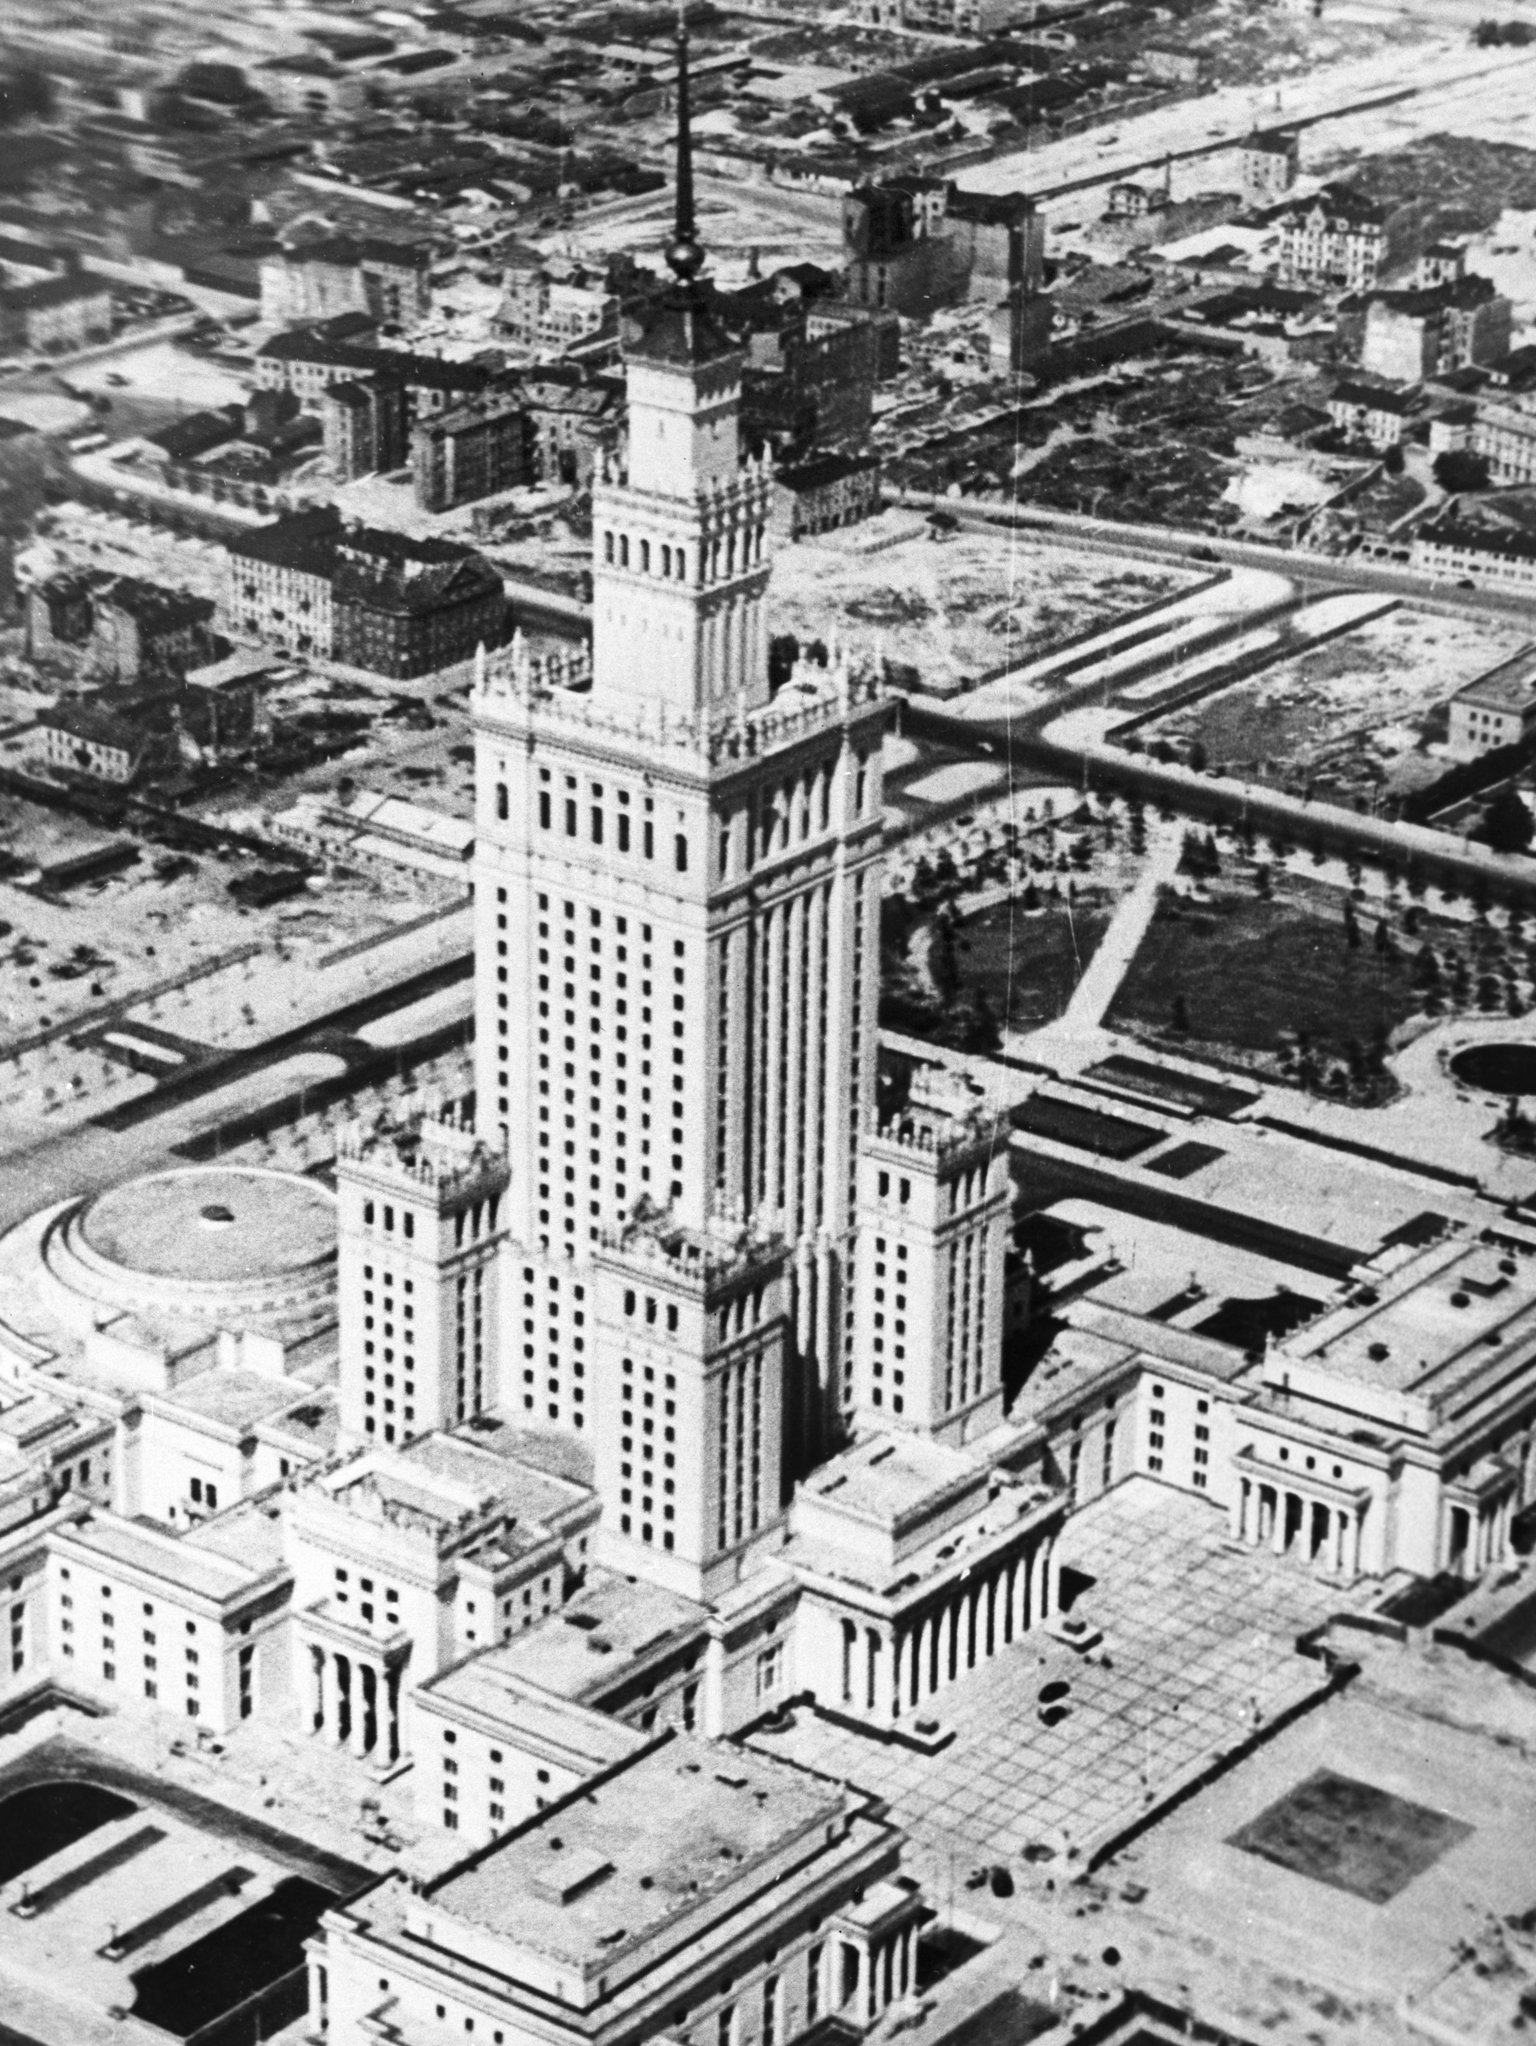 The Palace of Culture and Science in 1955.